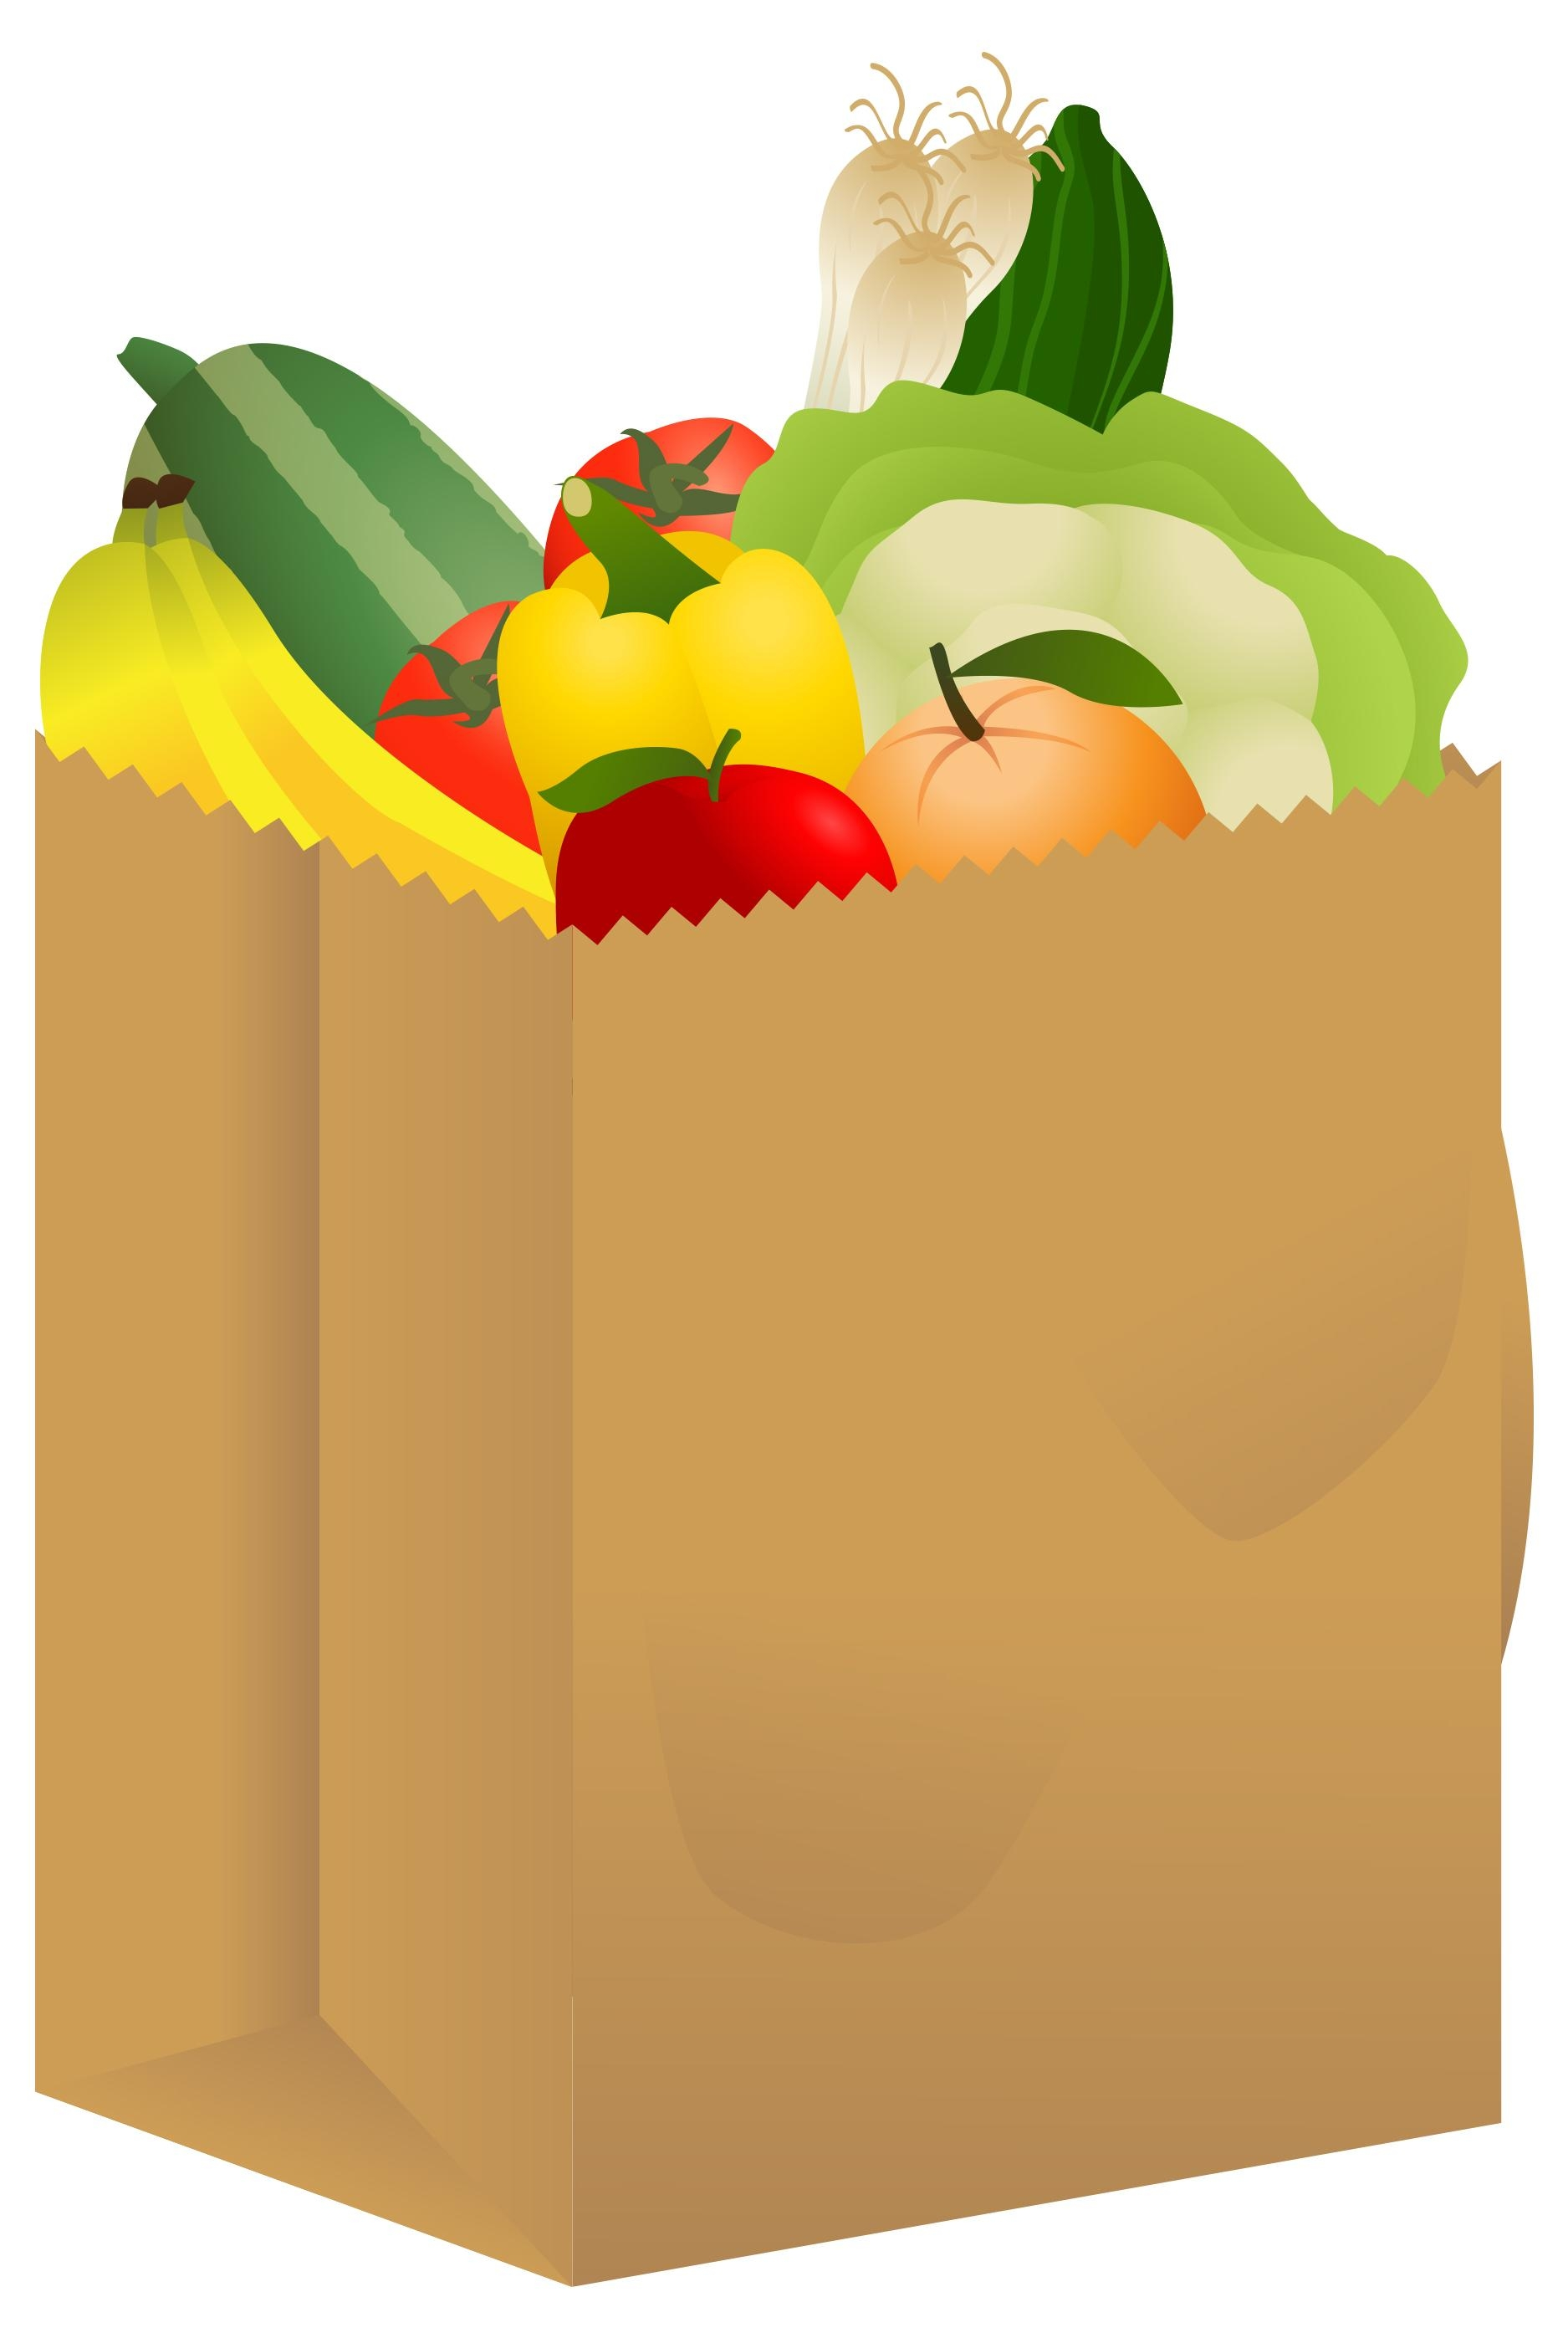 Bag clipart grocery. Unique shopping bags design